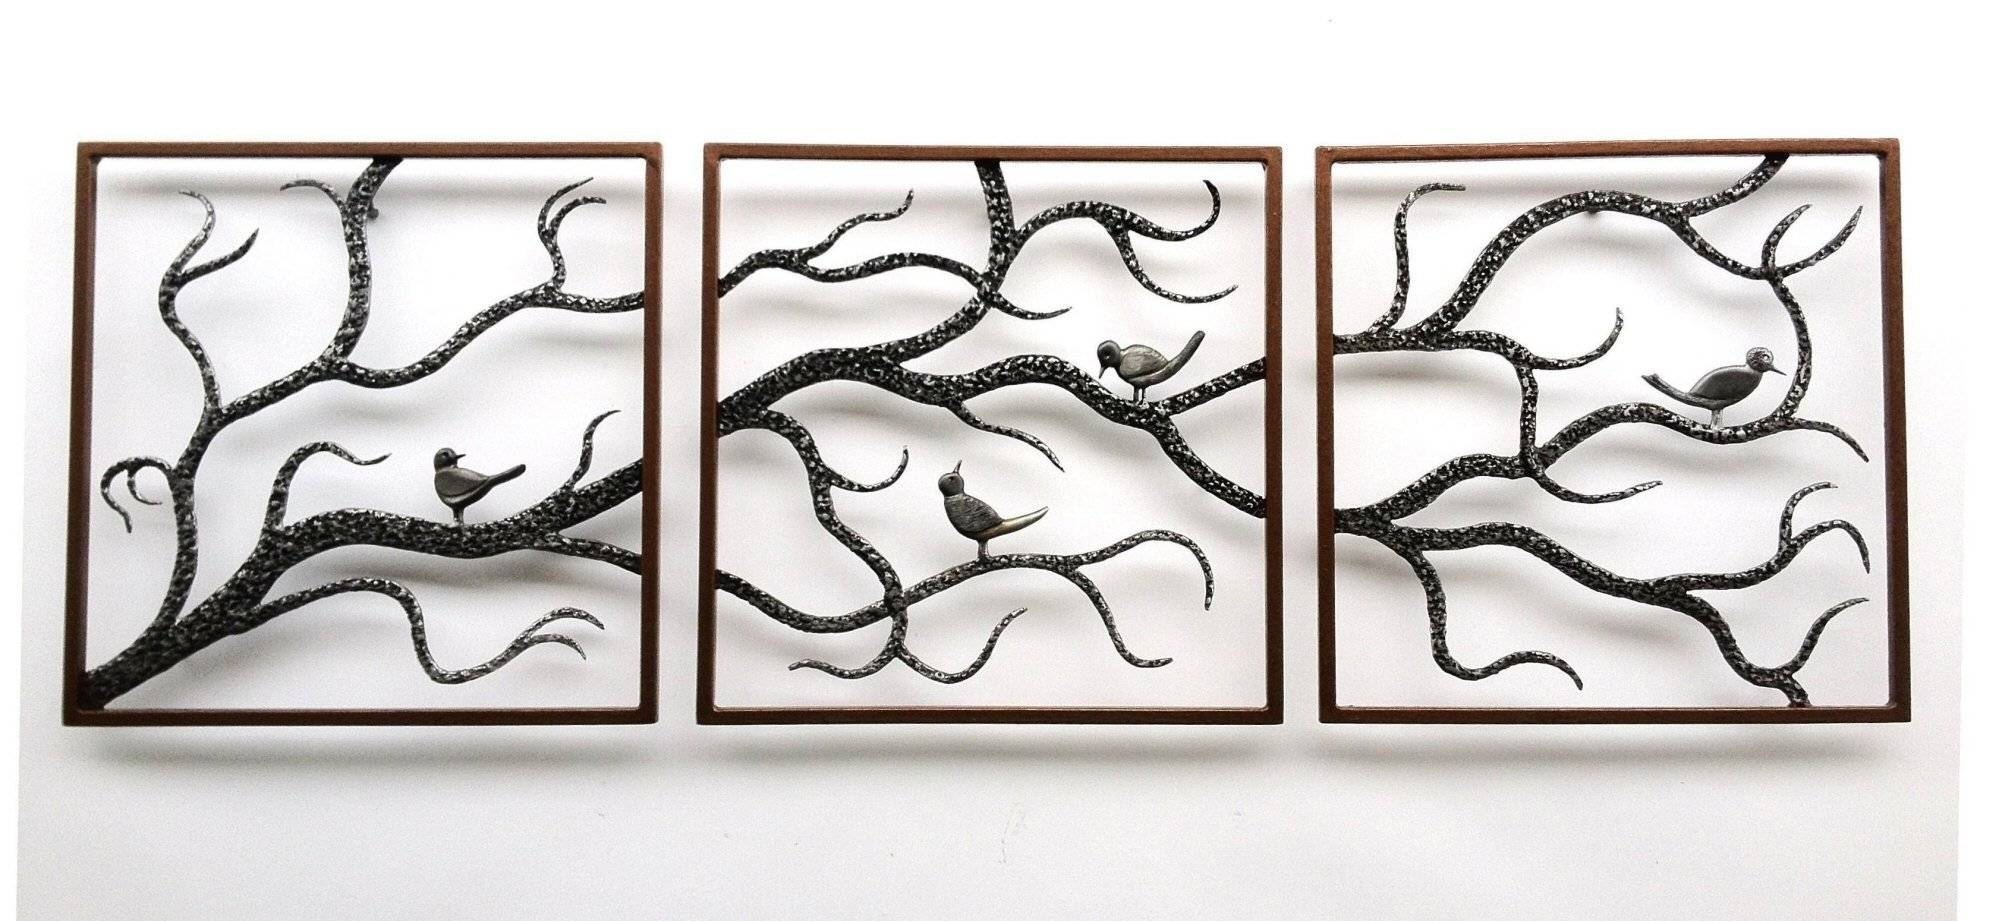 Wall Art Designs: Metal Wall Art Trees Birch Three Framed Cute For Most Popular Large Metal Wall Art Sculptures (View 11 of 20)